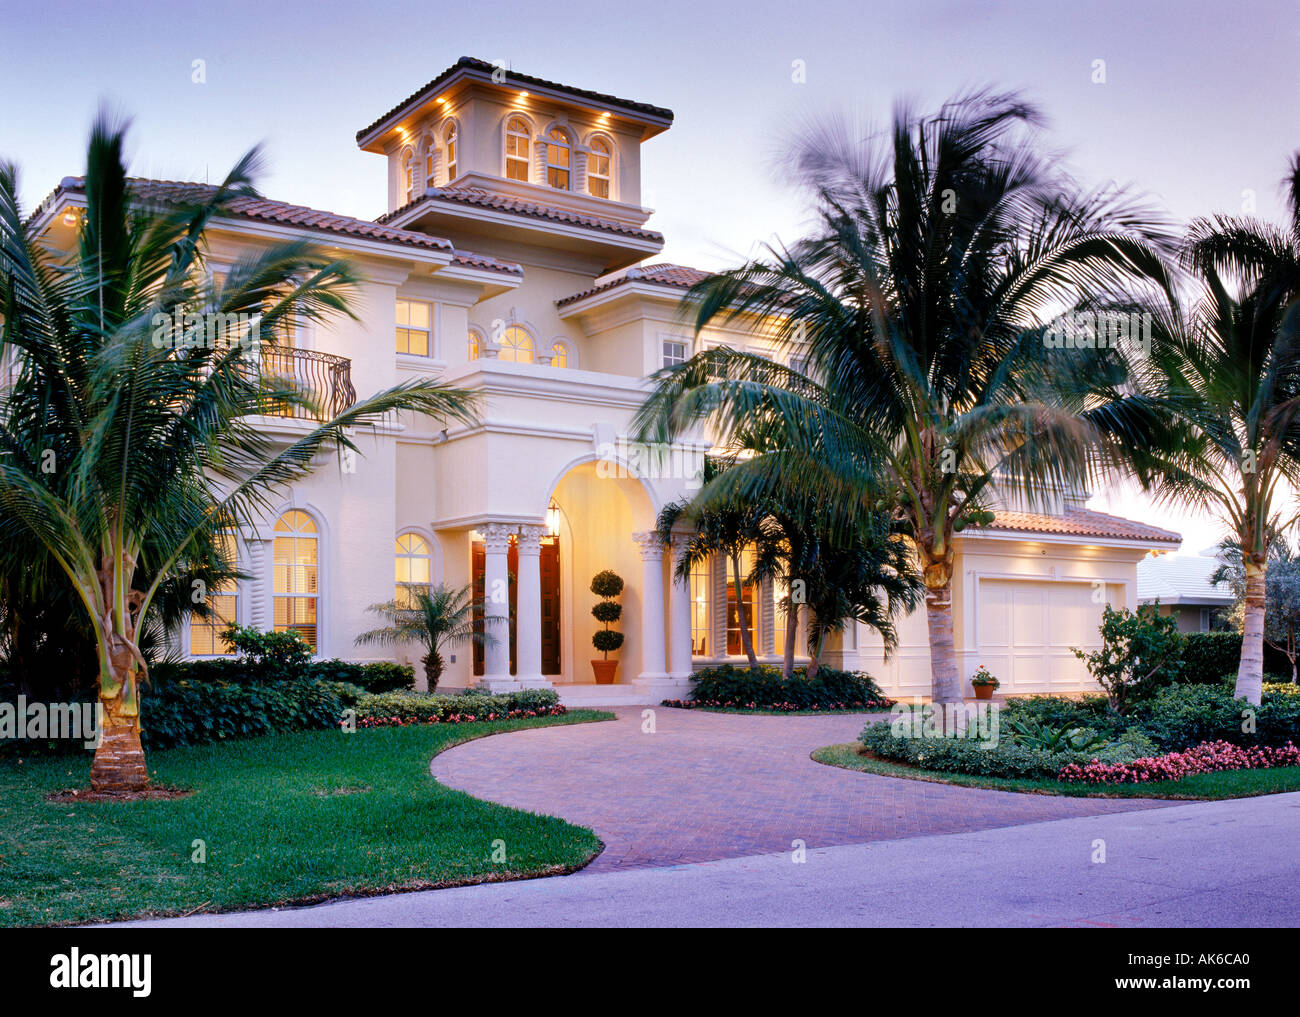 Mediterranean style home exterior at dusk stock photo for Mediterranean modular homes